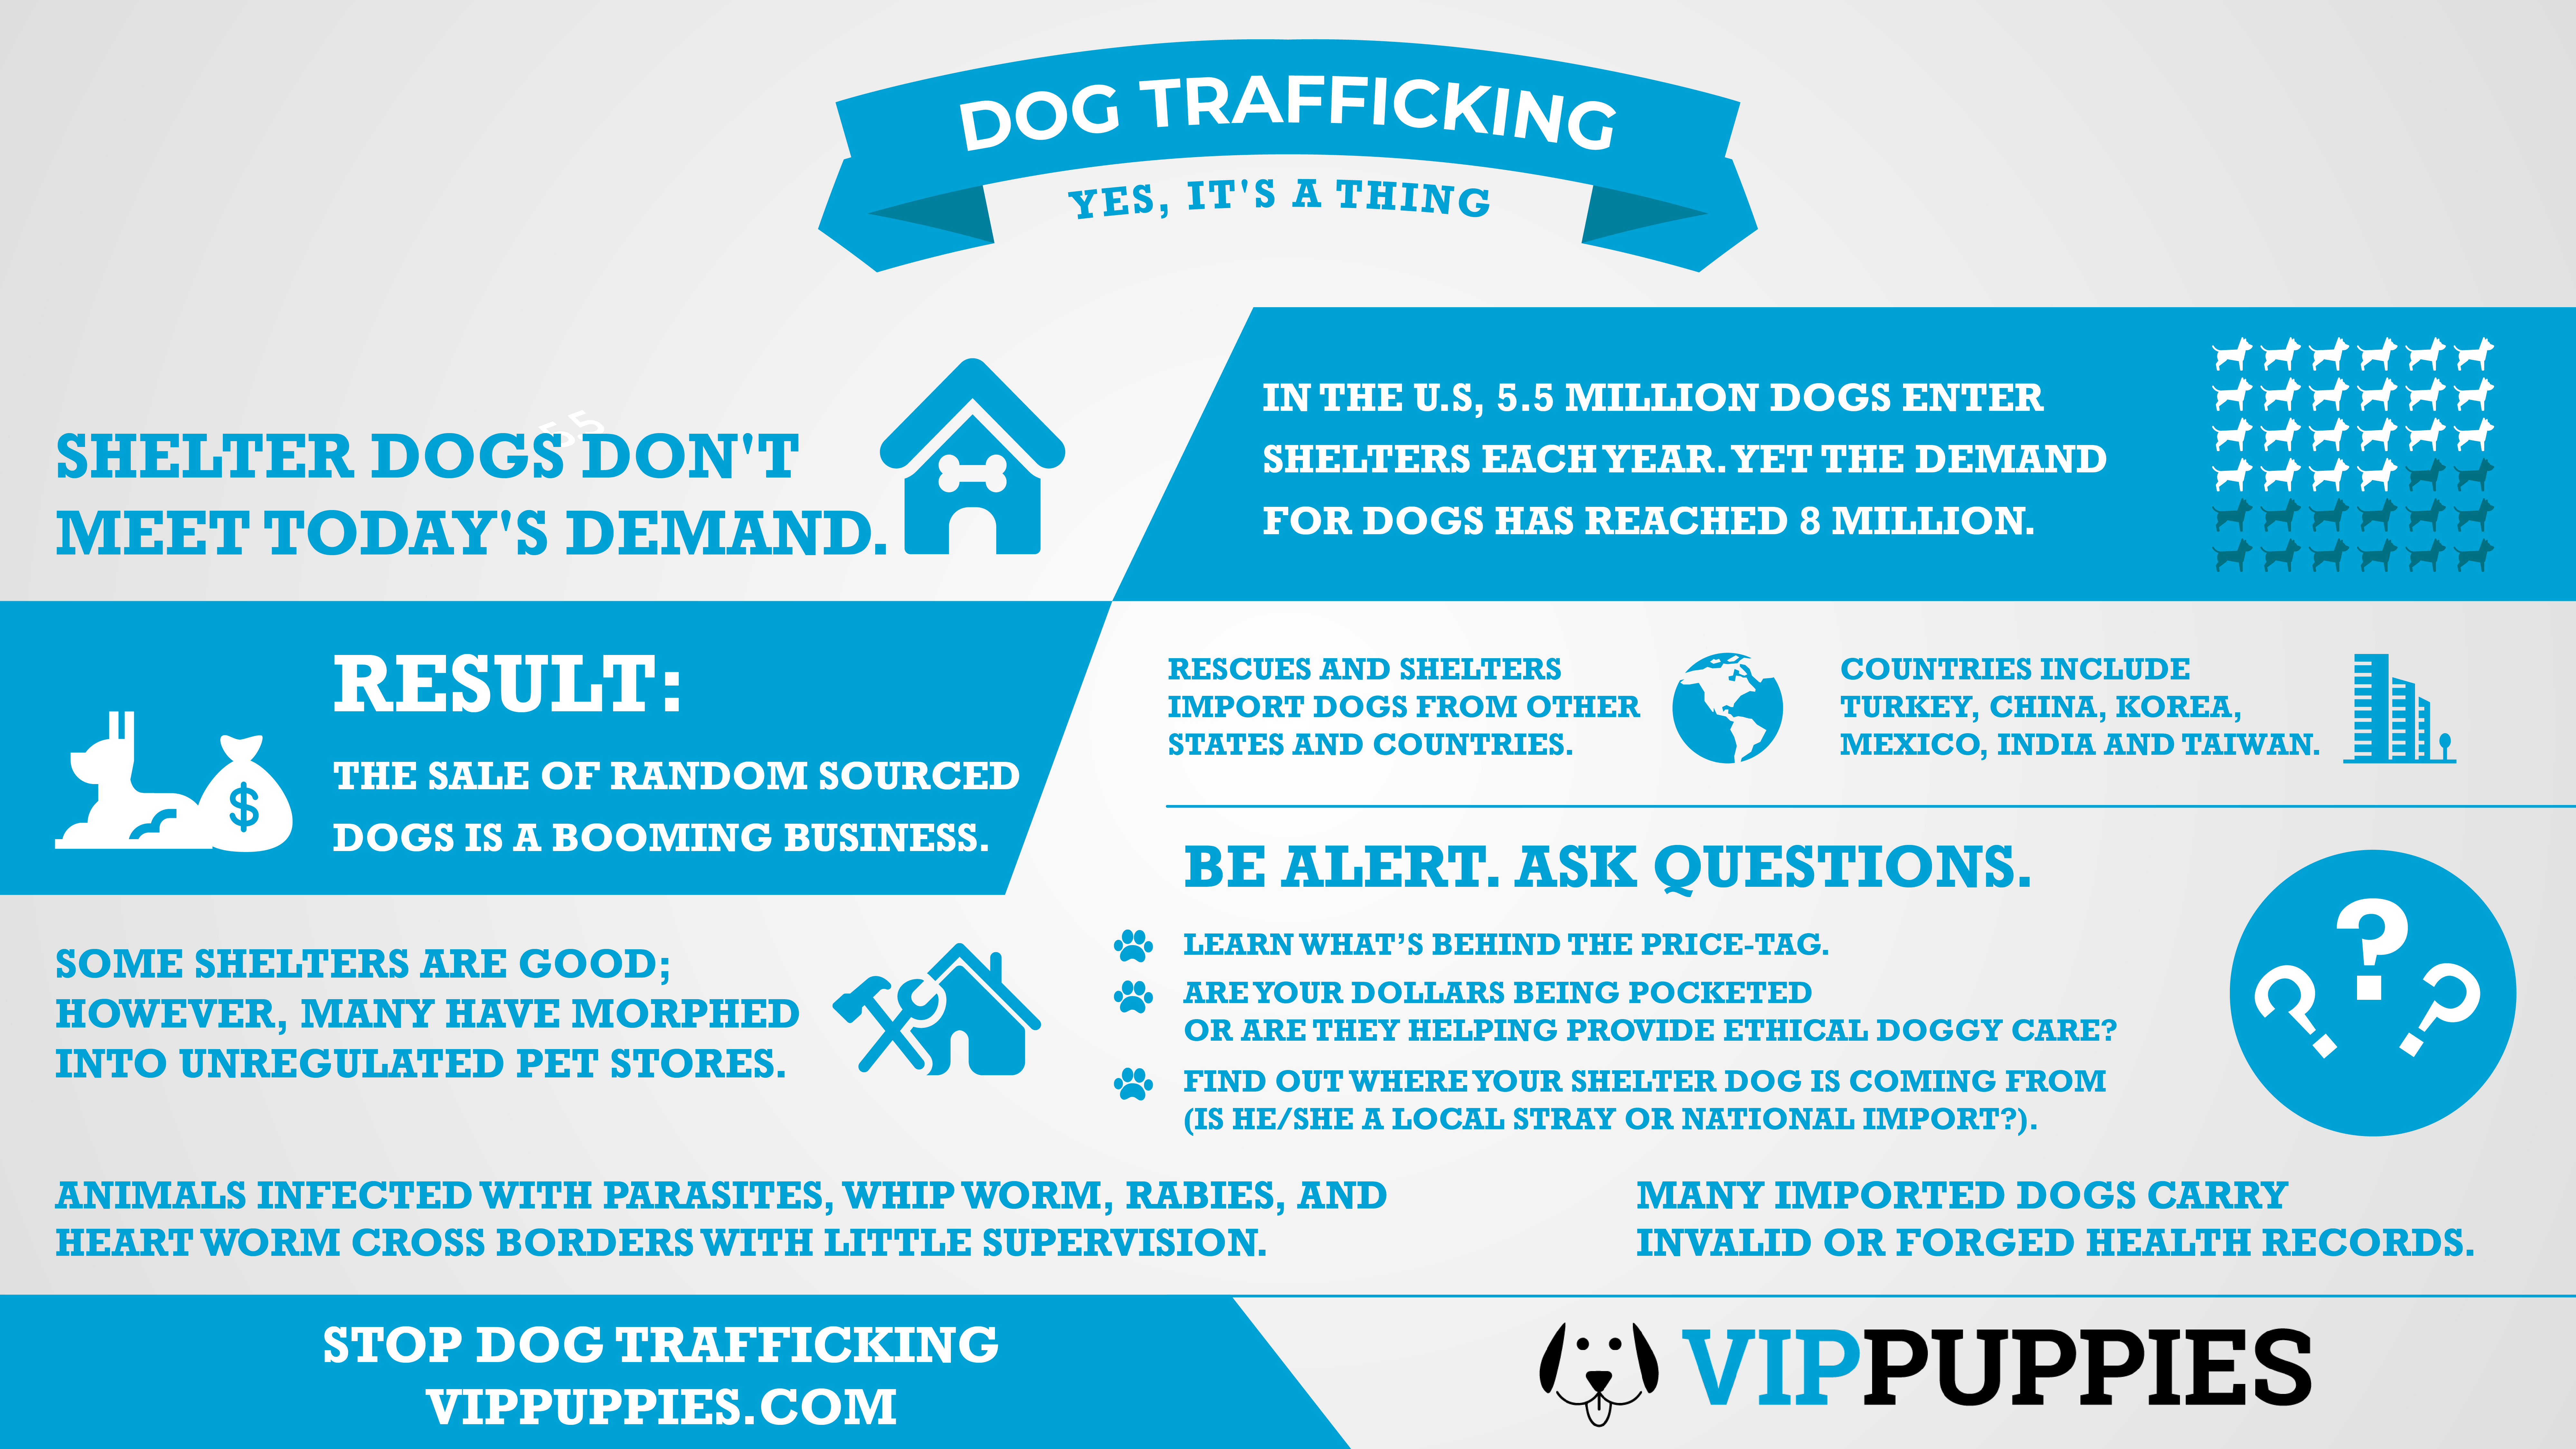 Stop dog trafficking and be pro dog.